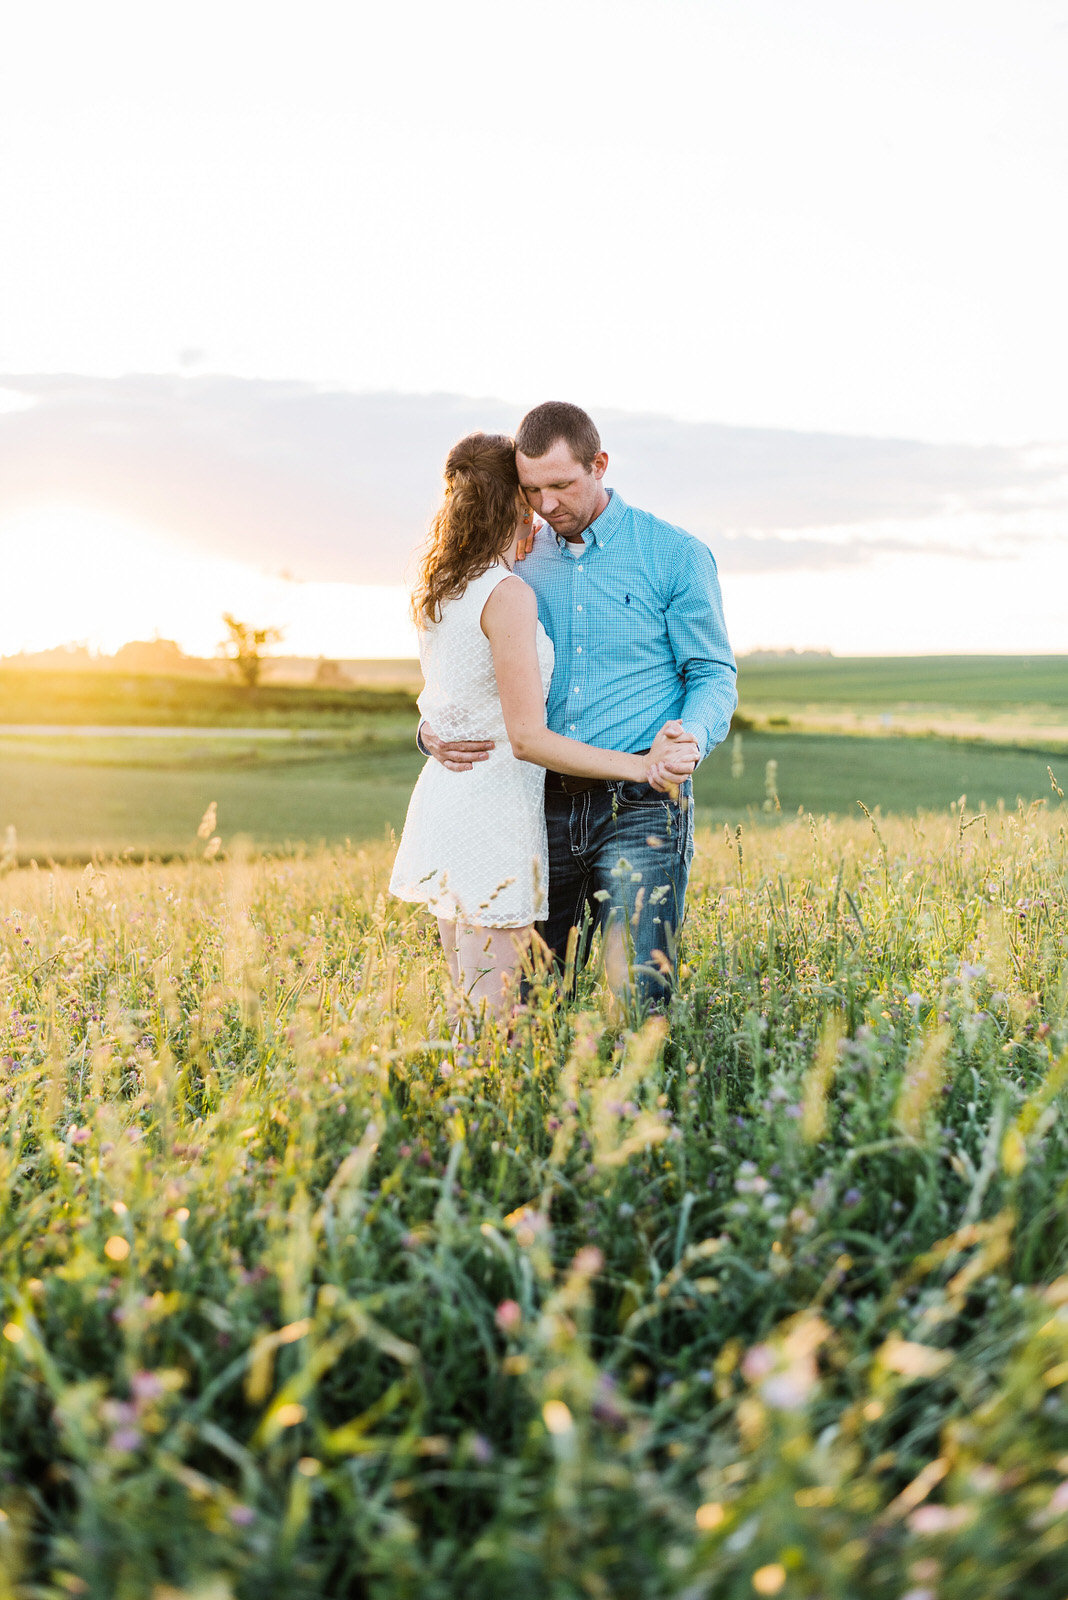 NIcole Corrine Dance in a field engagement session